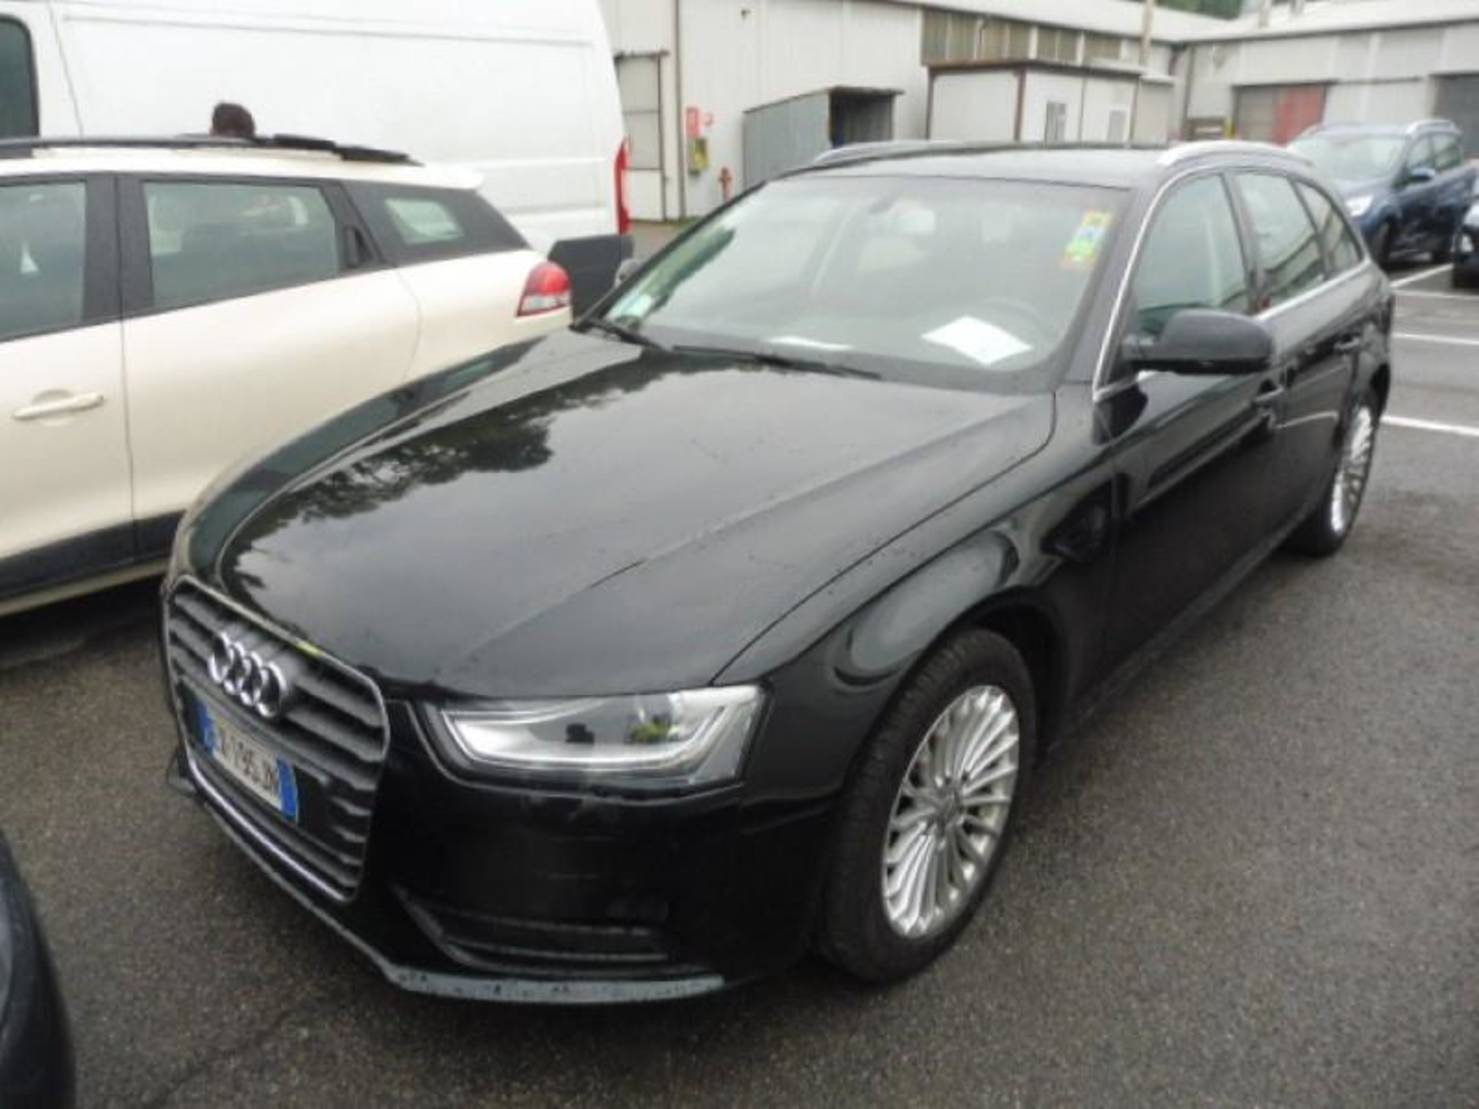 Audi A4 Avant 2.0 Tdi 130kw Multitronic Business Plus detail1